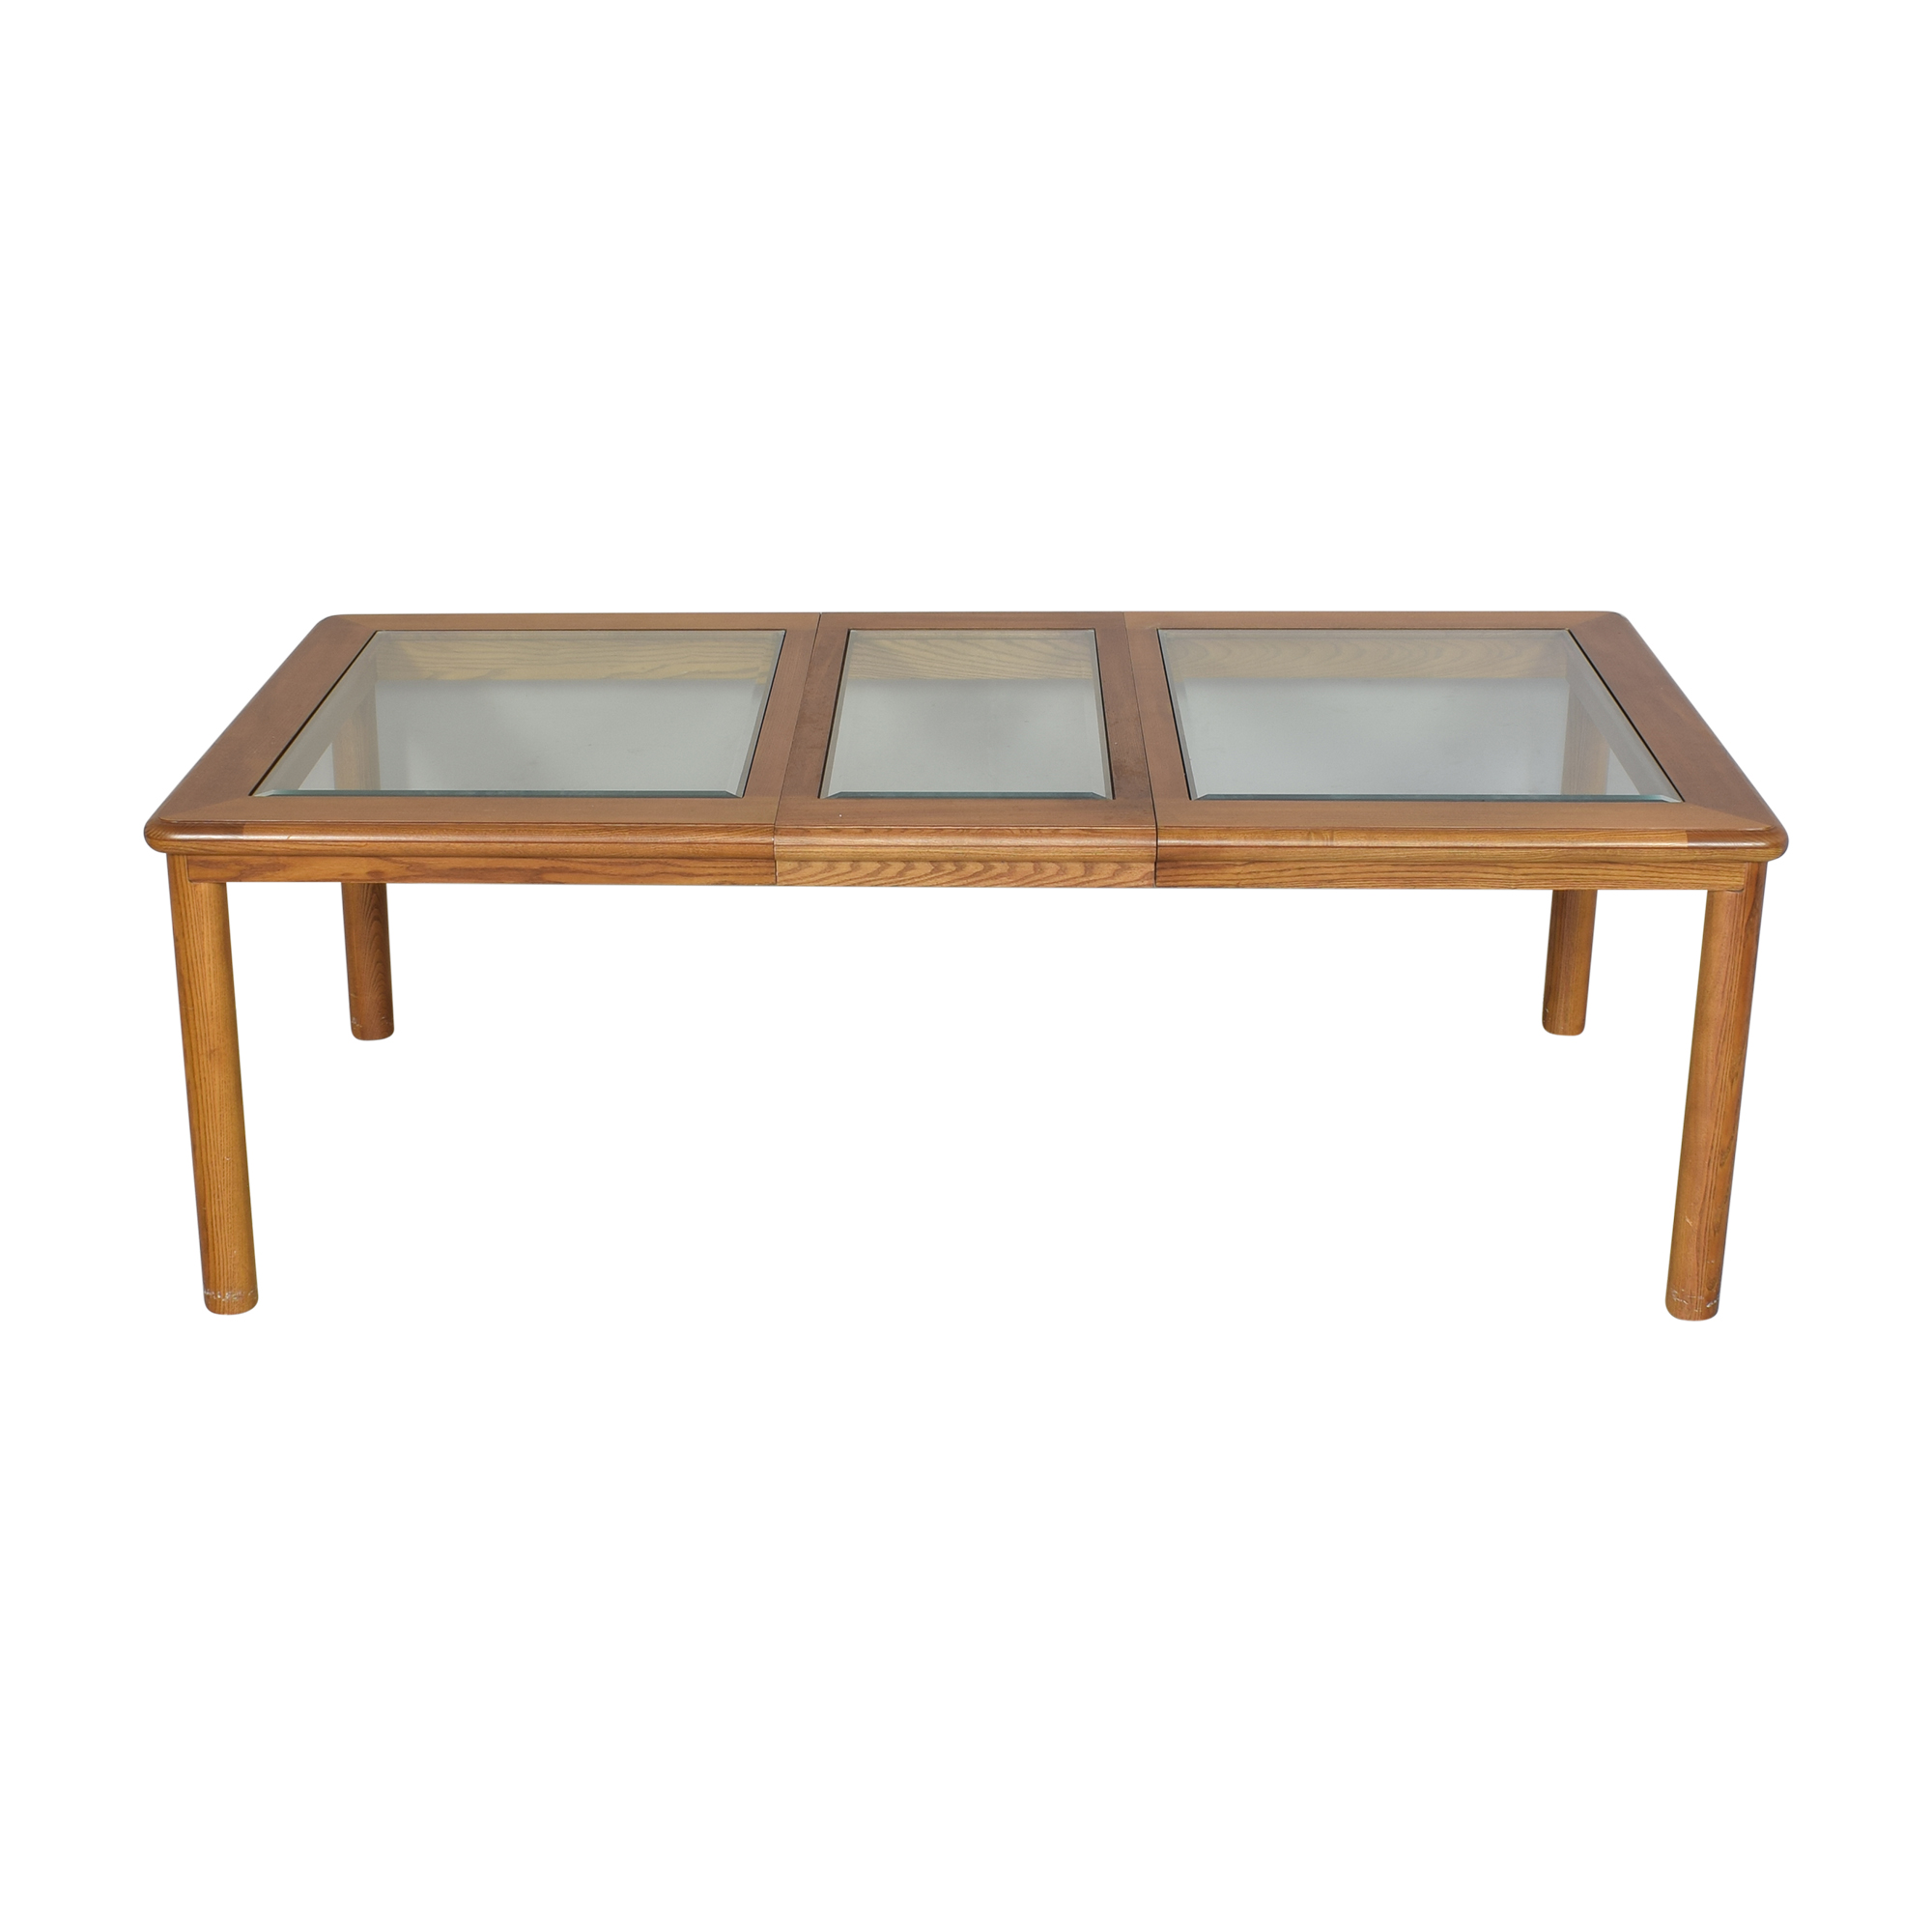 Thomasville Thomasville Extendable Dining Table discount